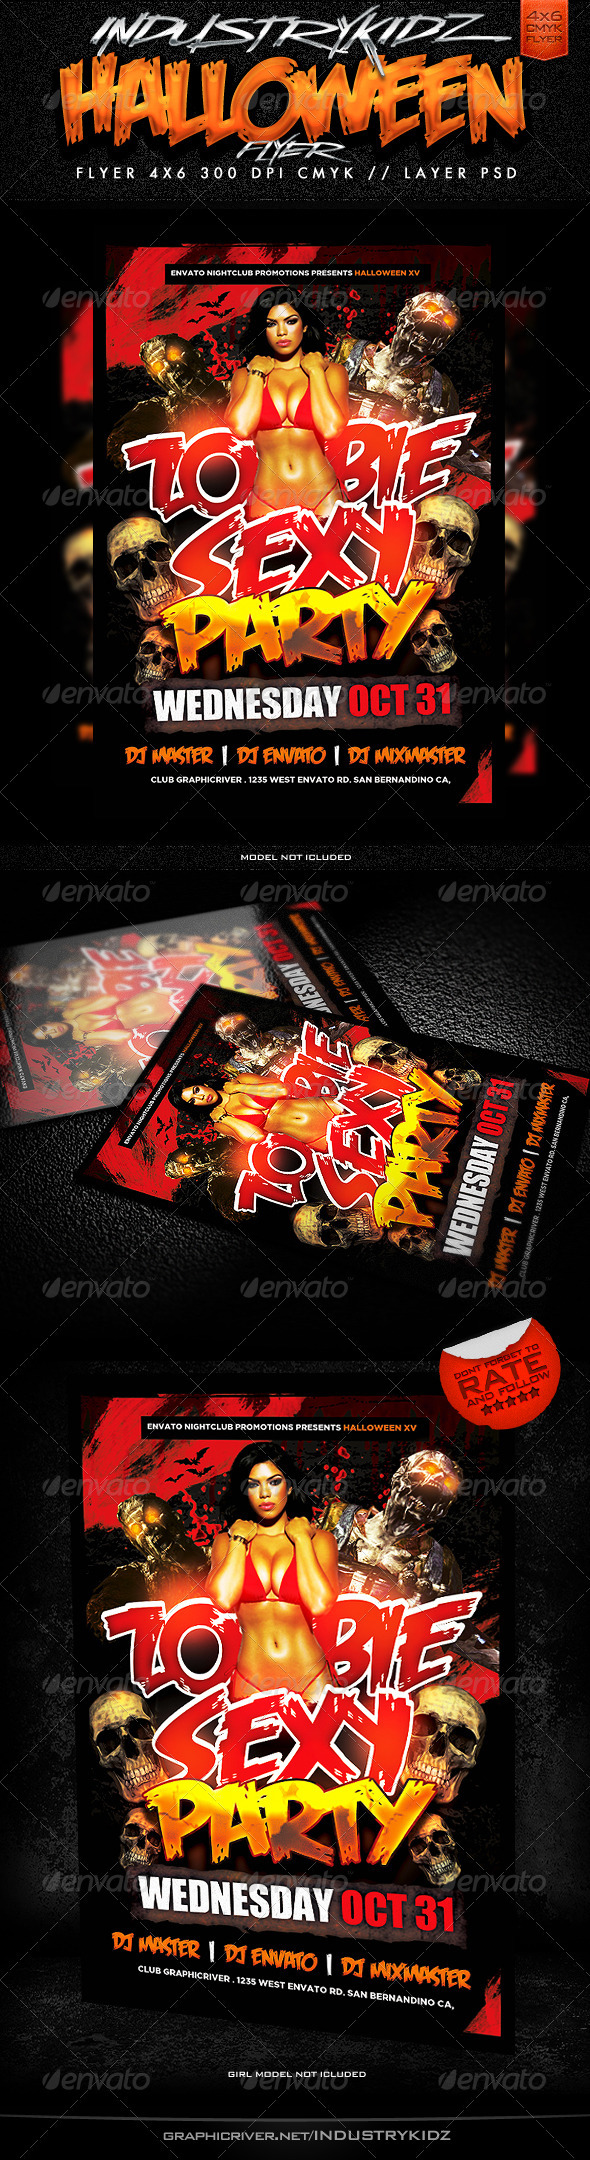 Zombie Sexy Party Flyer Template - Holidays Events